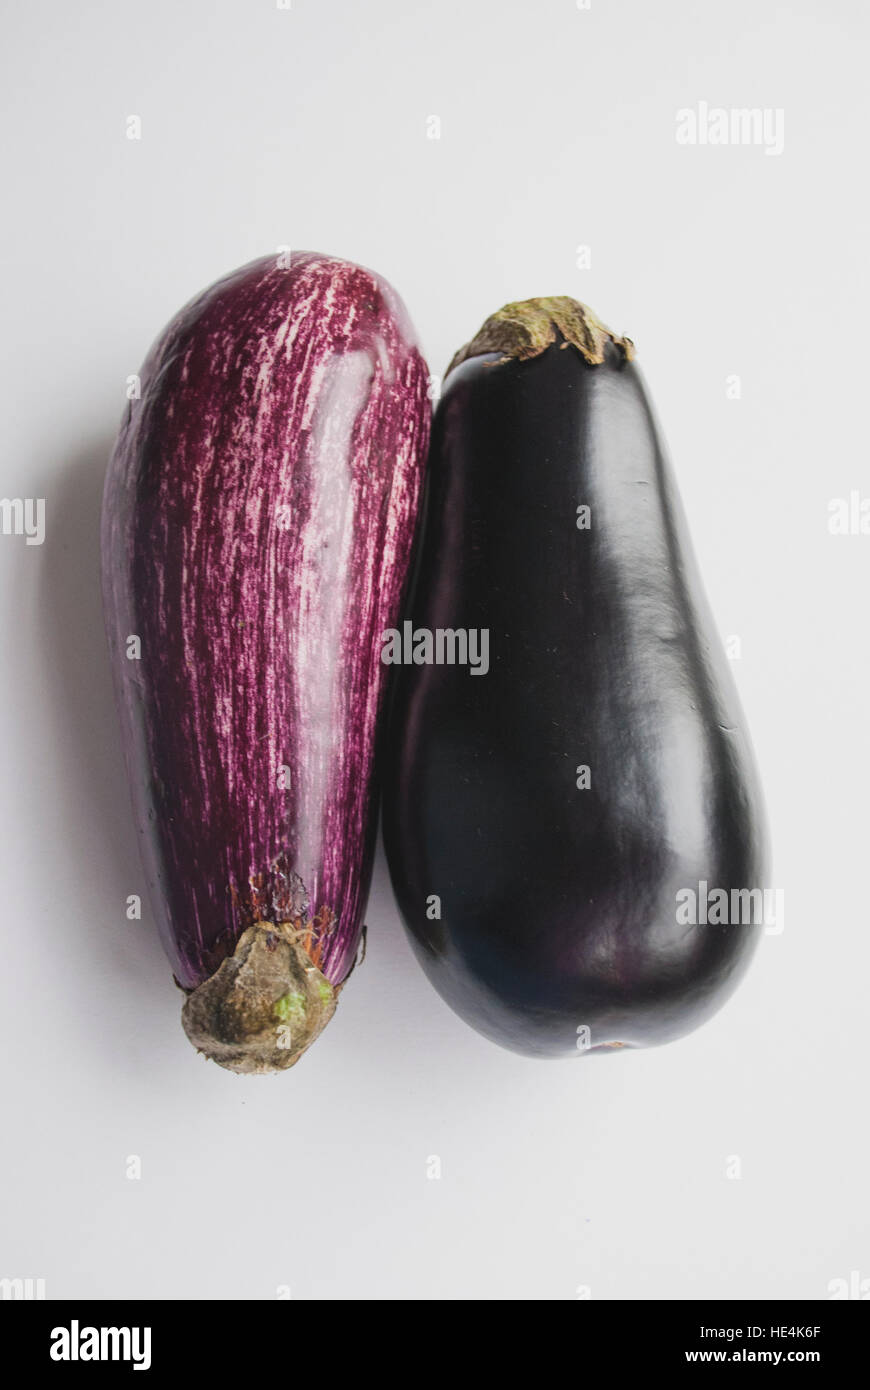 Two purple eggplants aubergines on white background - Stock Image